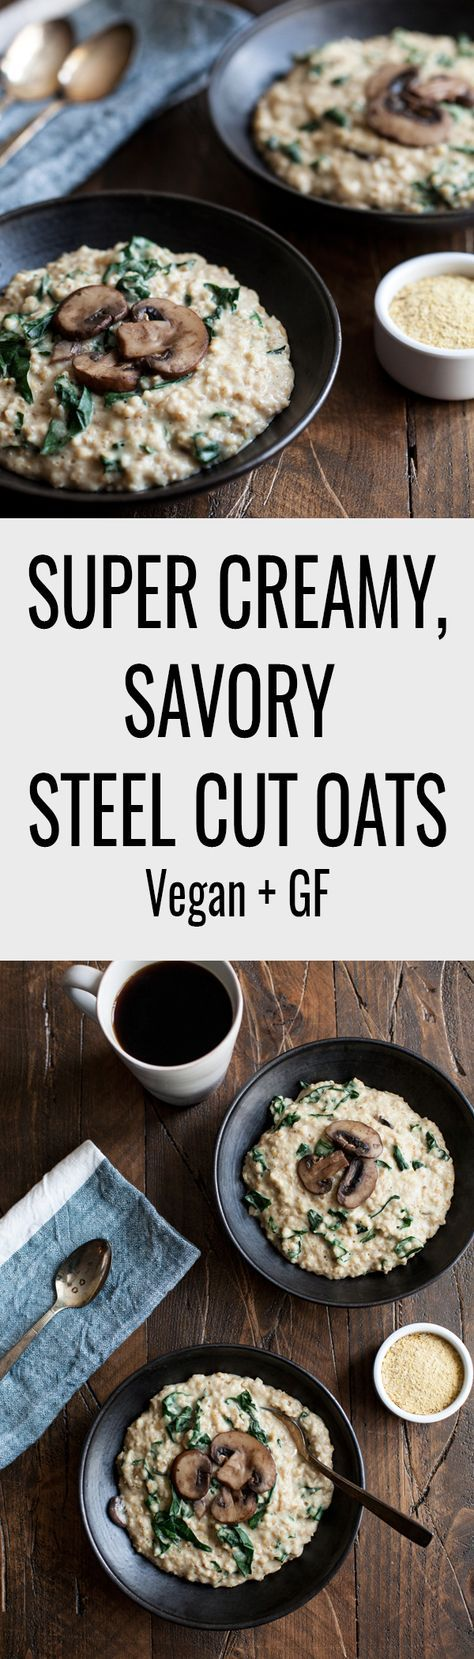 Super Creamy, Savory Steel Cut Oats | The Full Helping